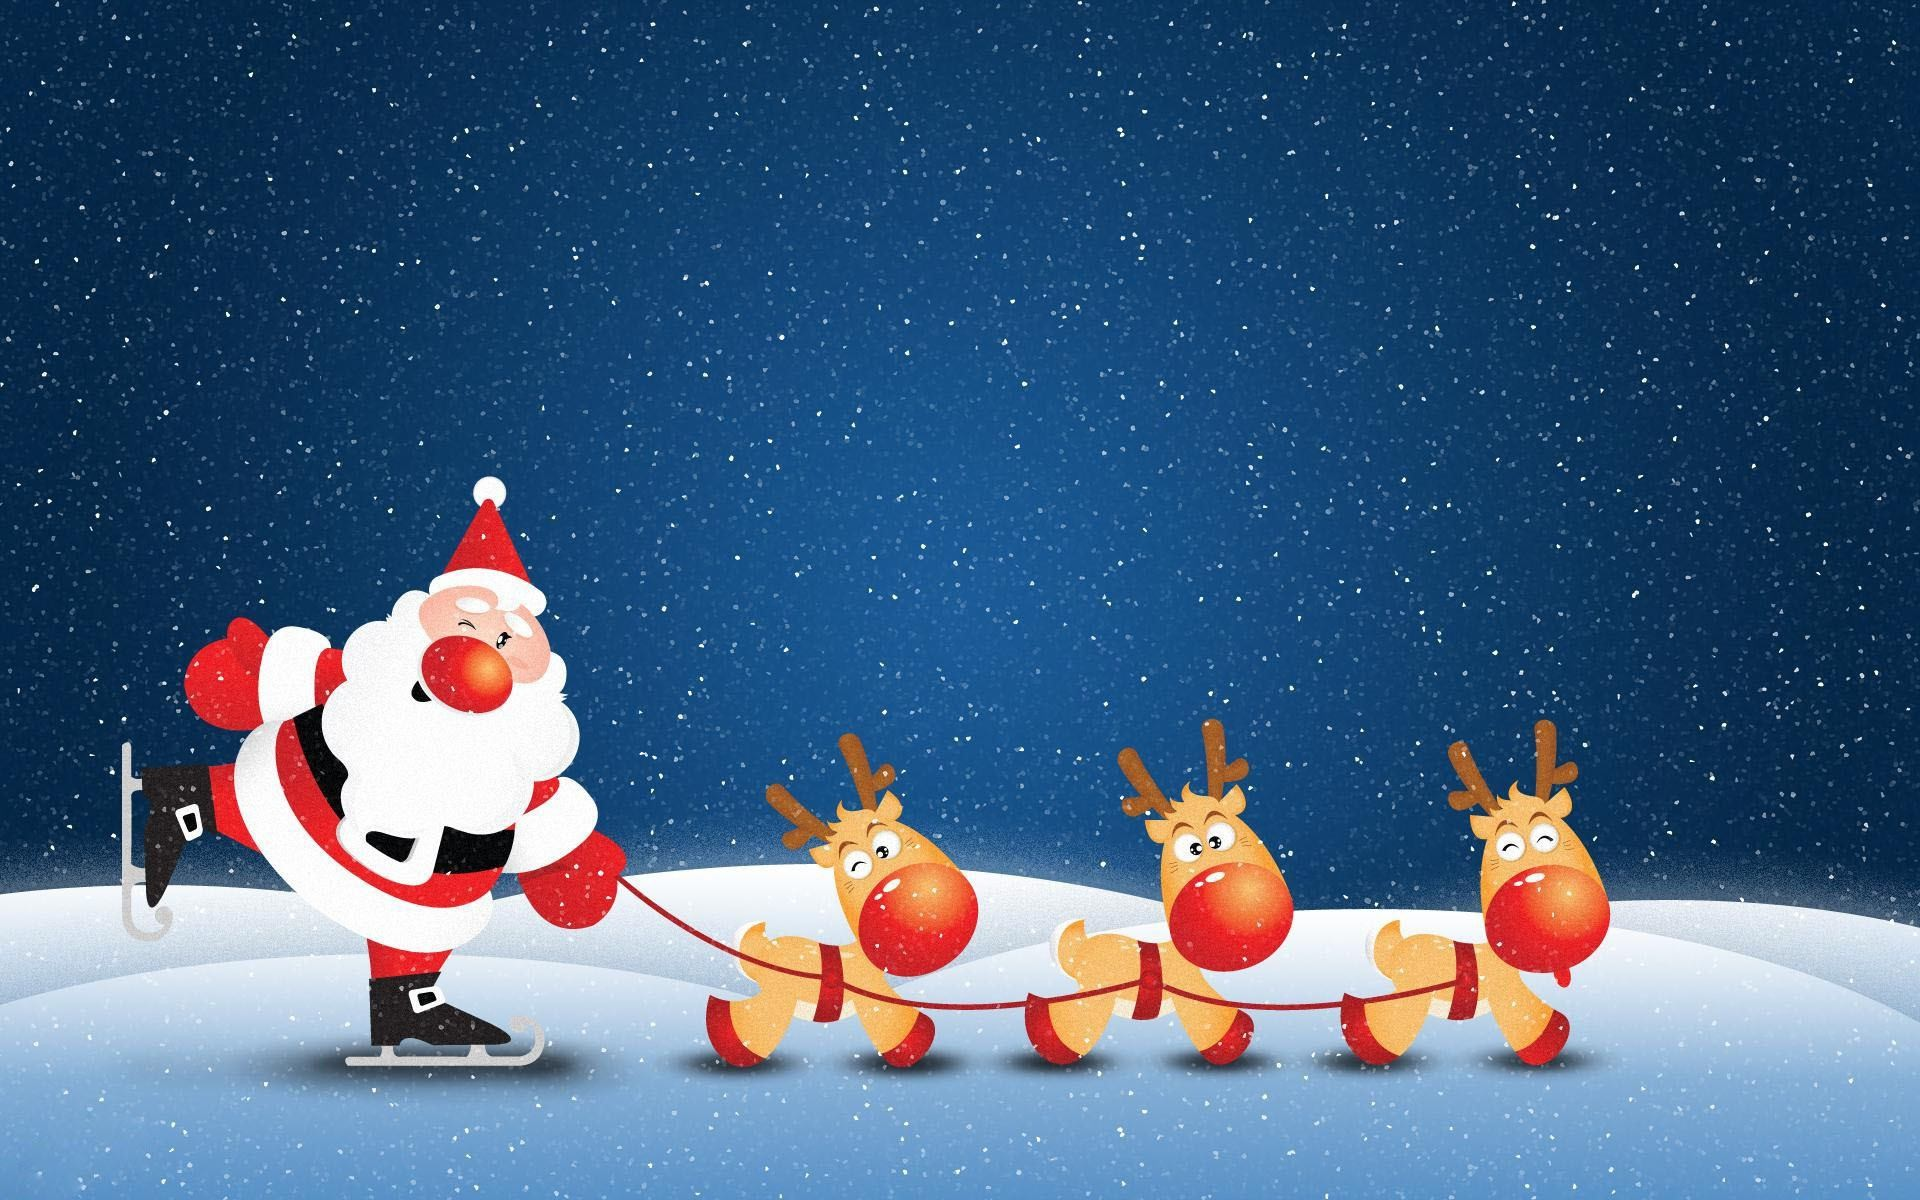 Santa Claus Wallpaper,HD Wallpapers,Images,Pictures